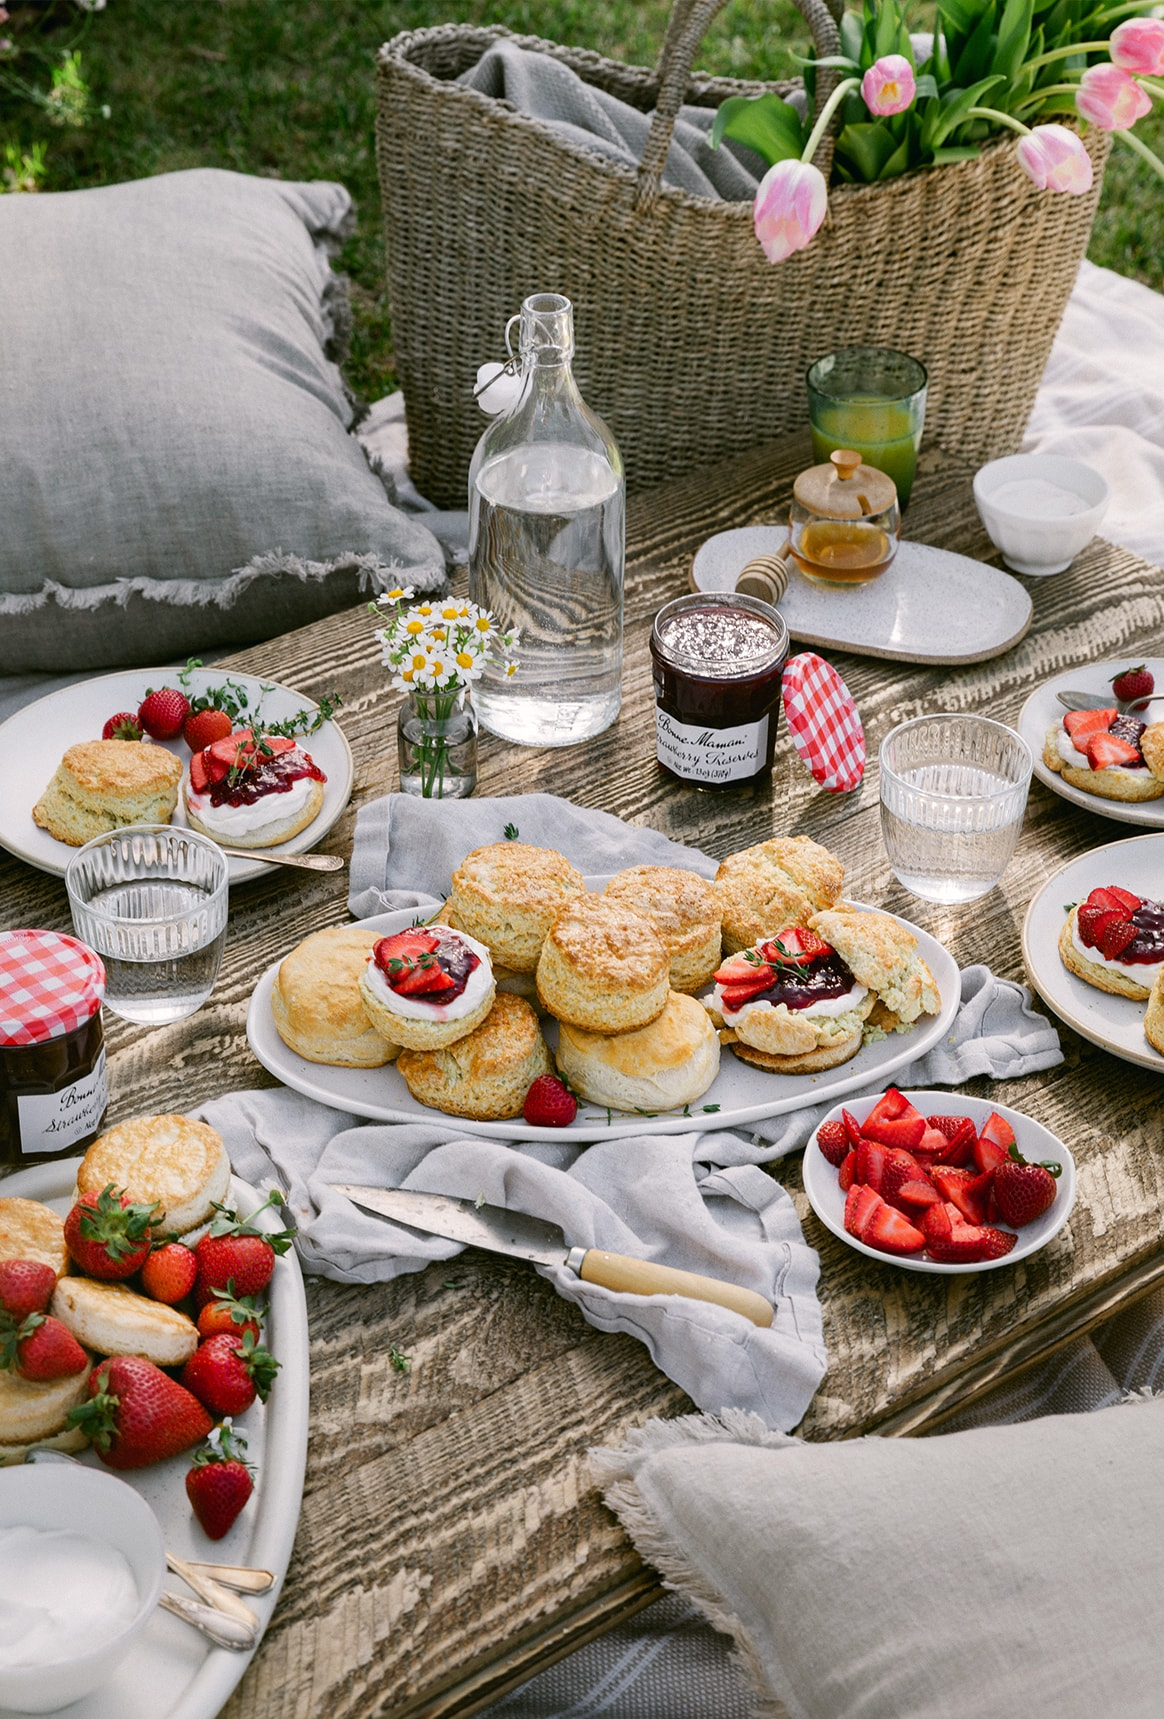 Spring picnic setting with strawberry shortcakes filled with whipped labneh and preserves.